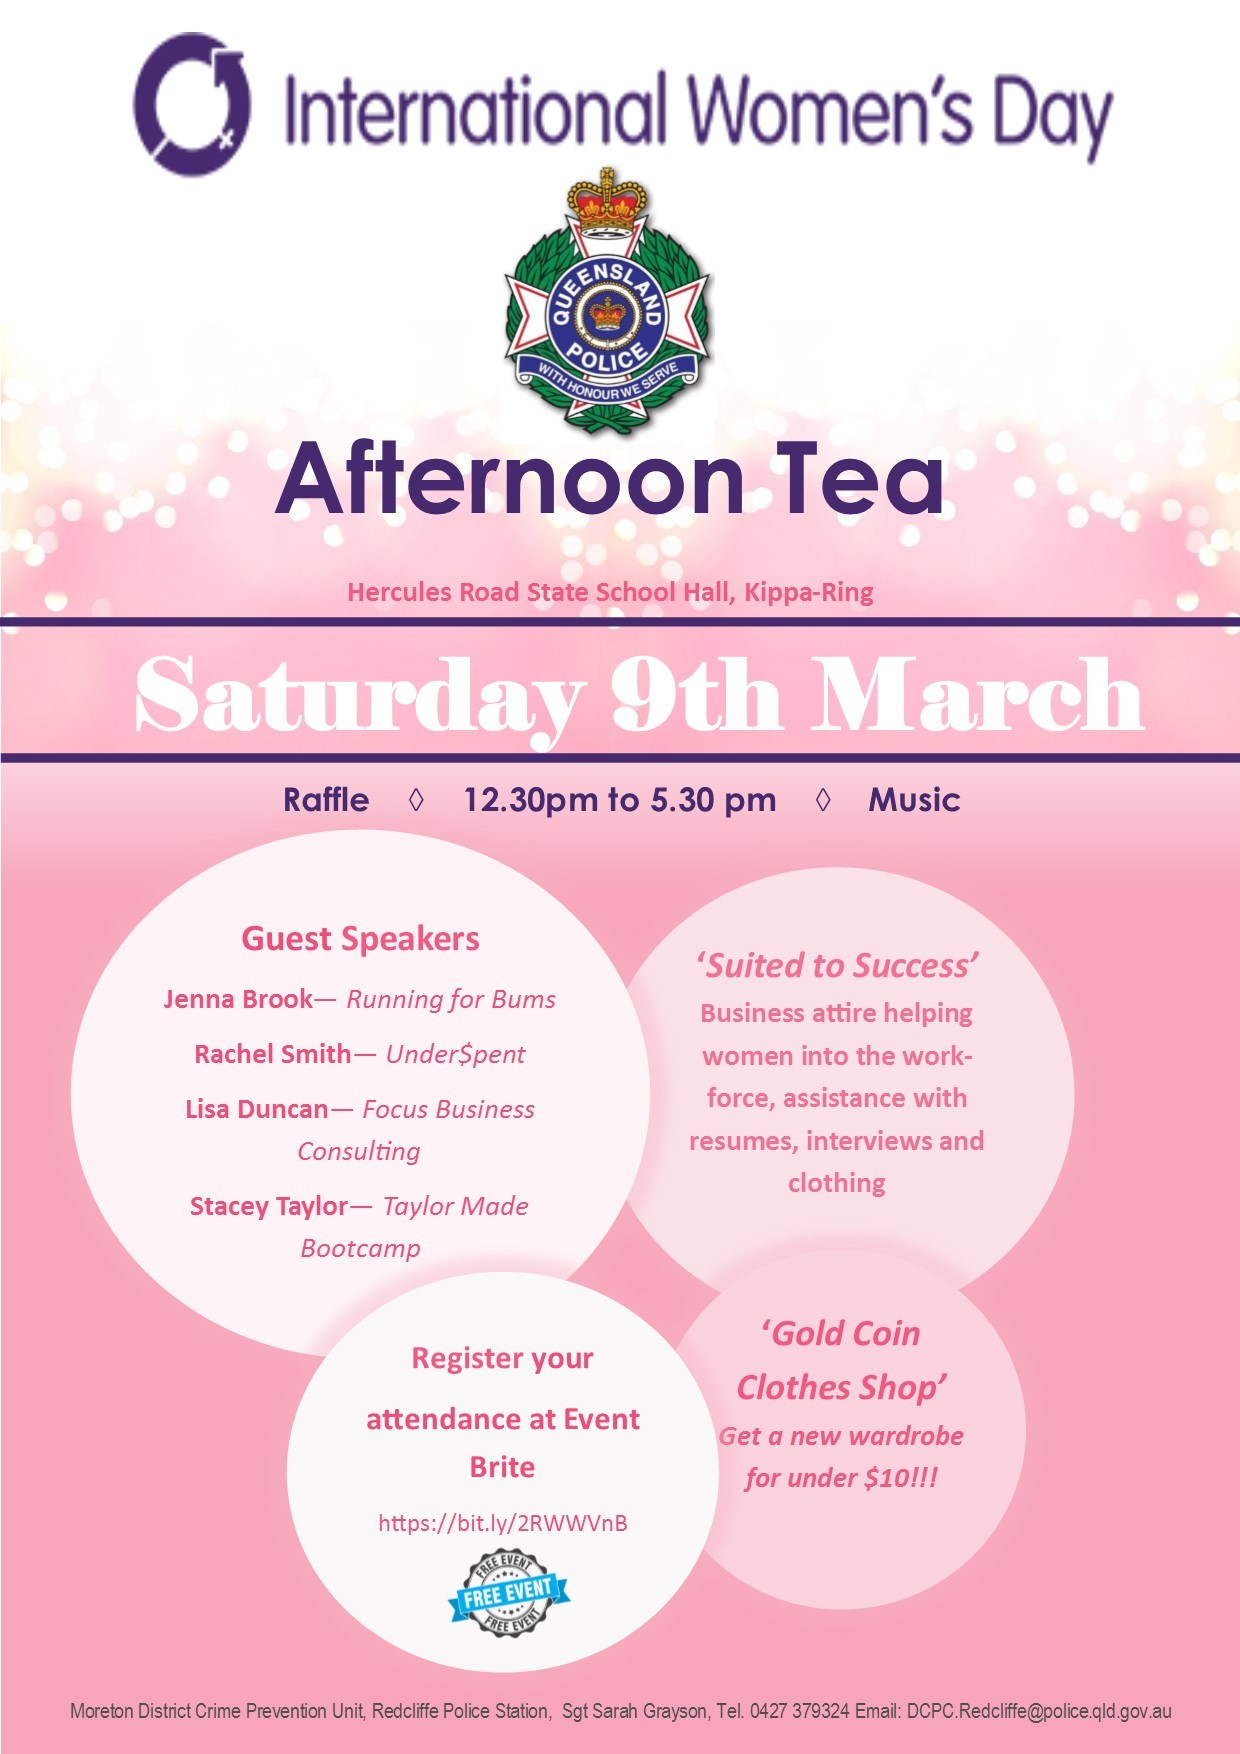 International-Womens-Day-Afternoon-Tea-v